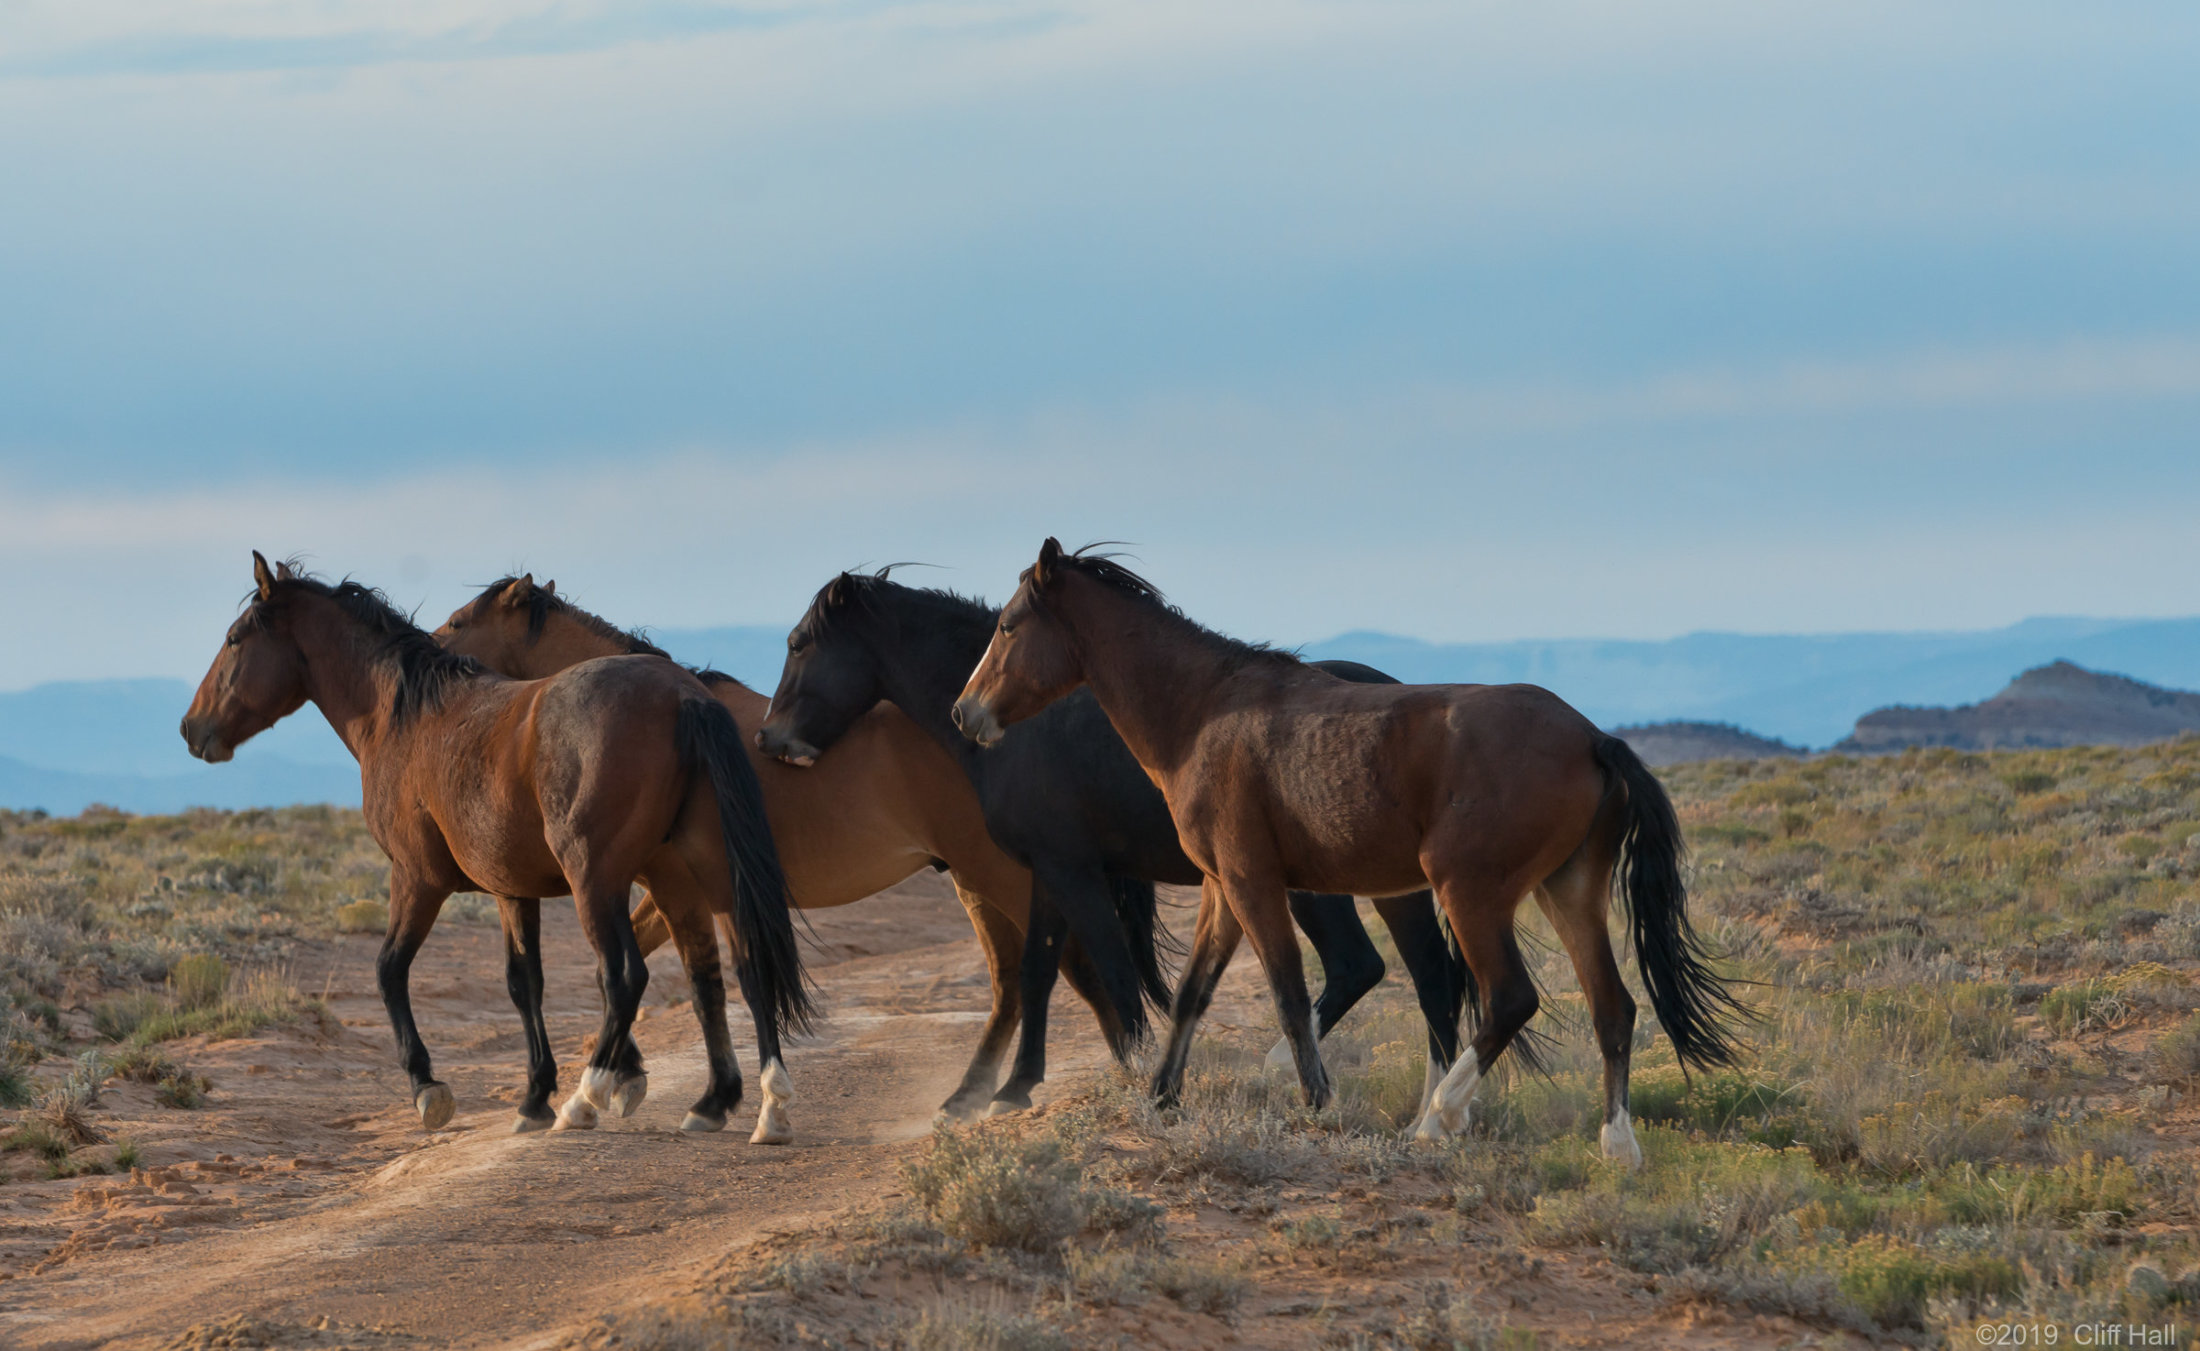 WIld horses roaming the range